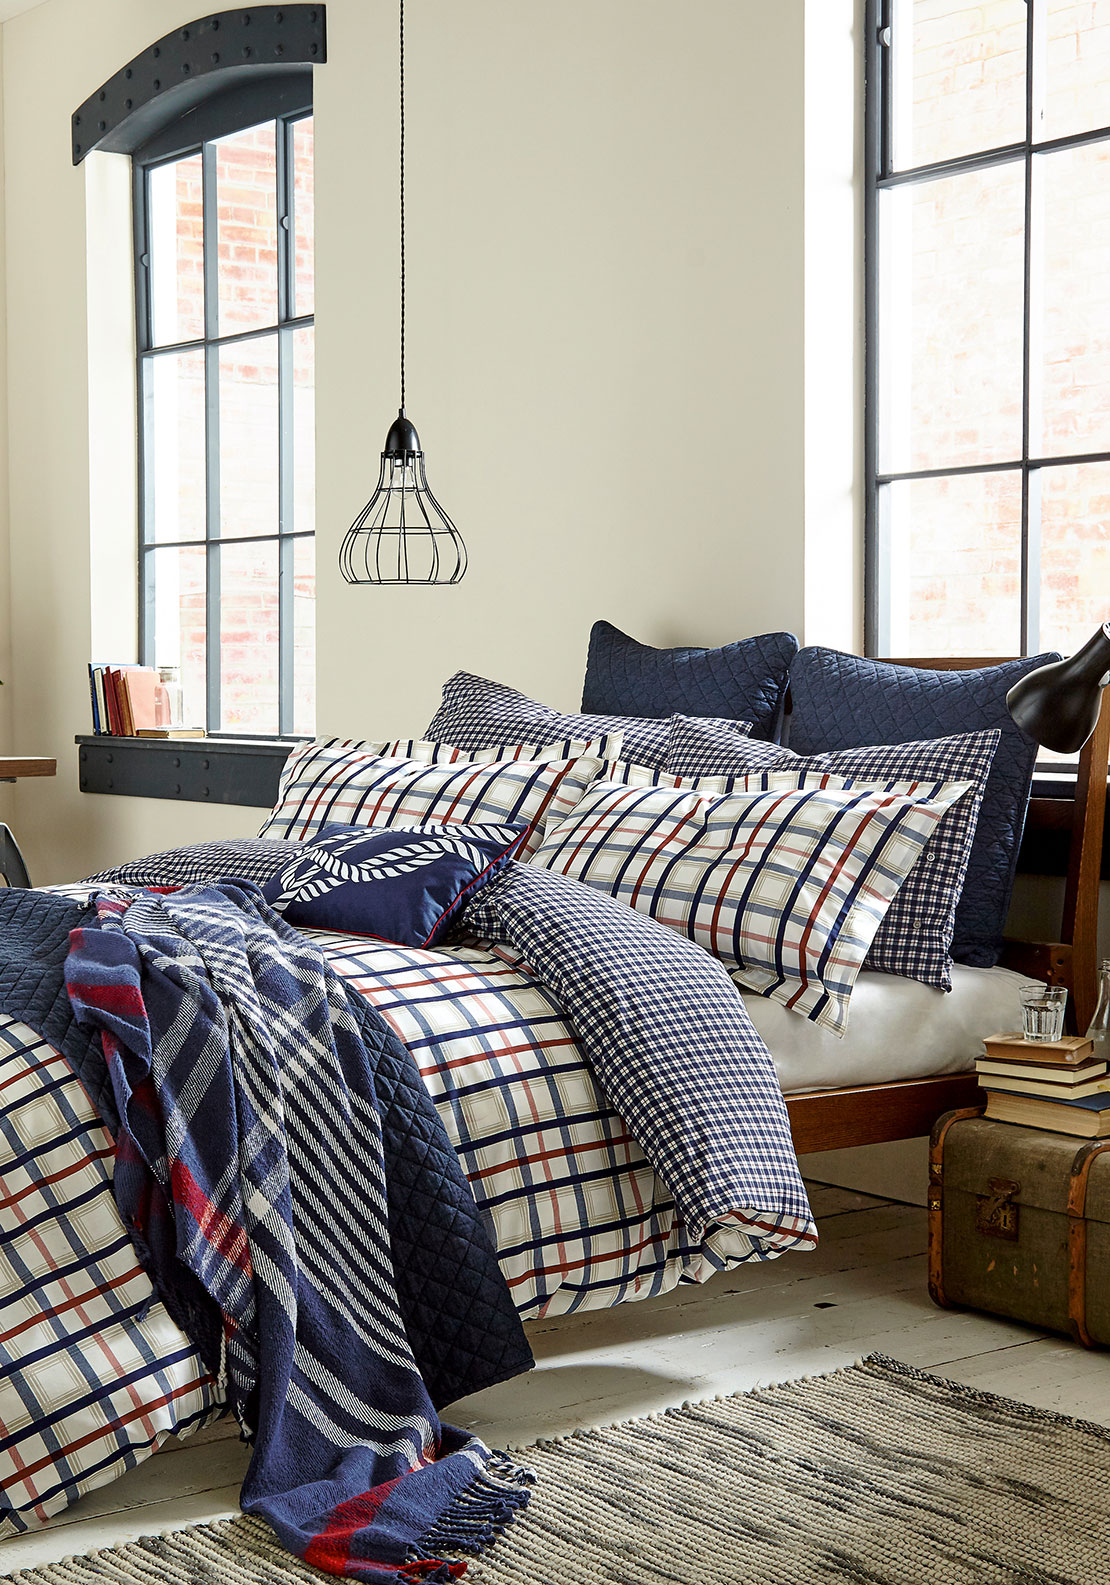 Peacock Blue Dexter Duvet Cover Set, Navy